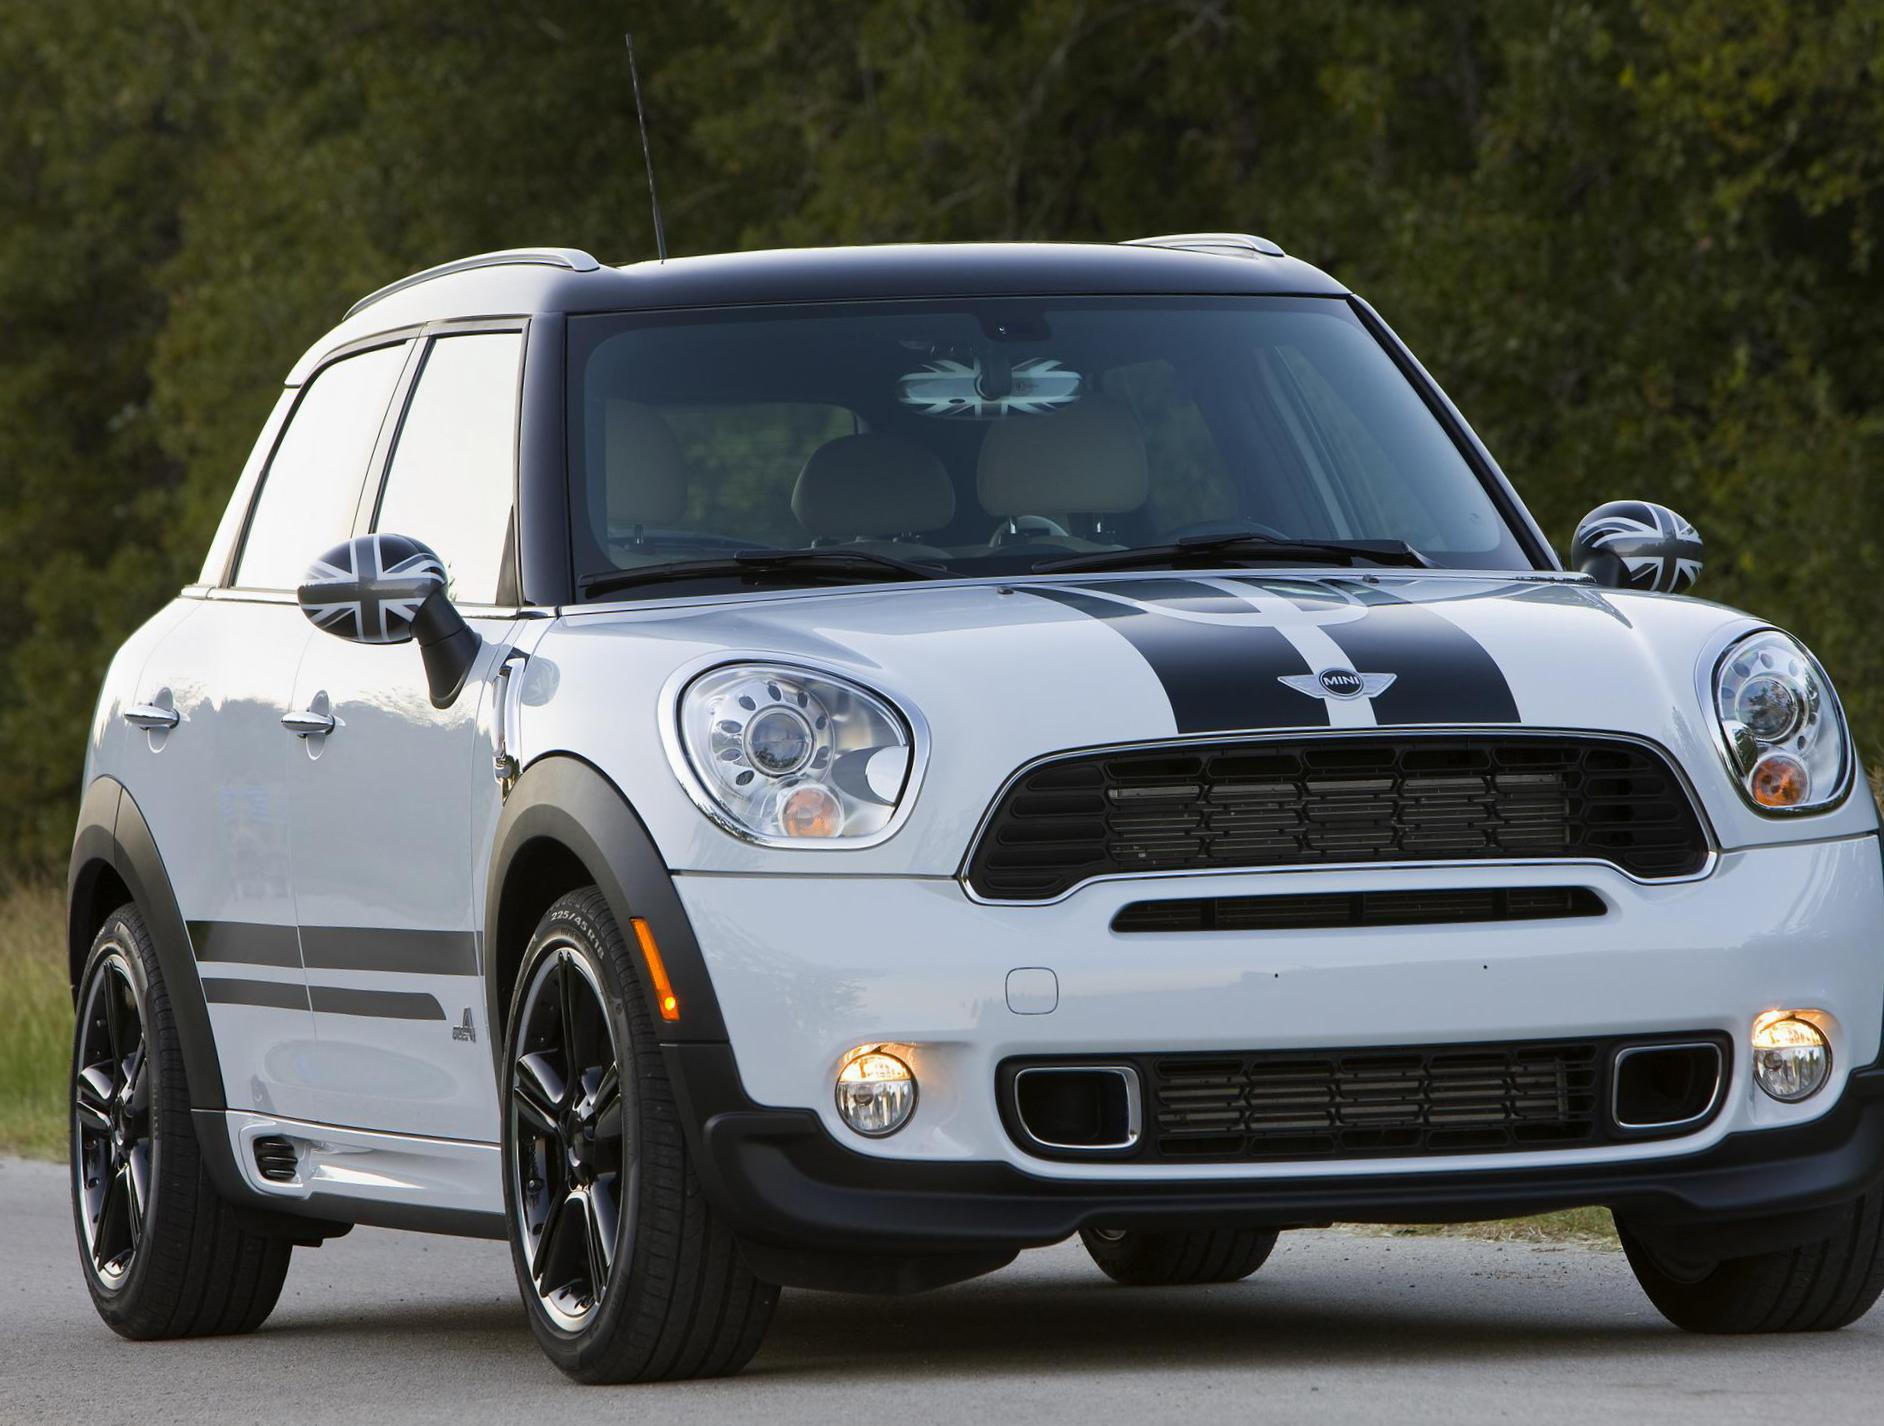 MINI Cooper S Countryman used 2013